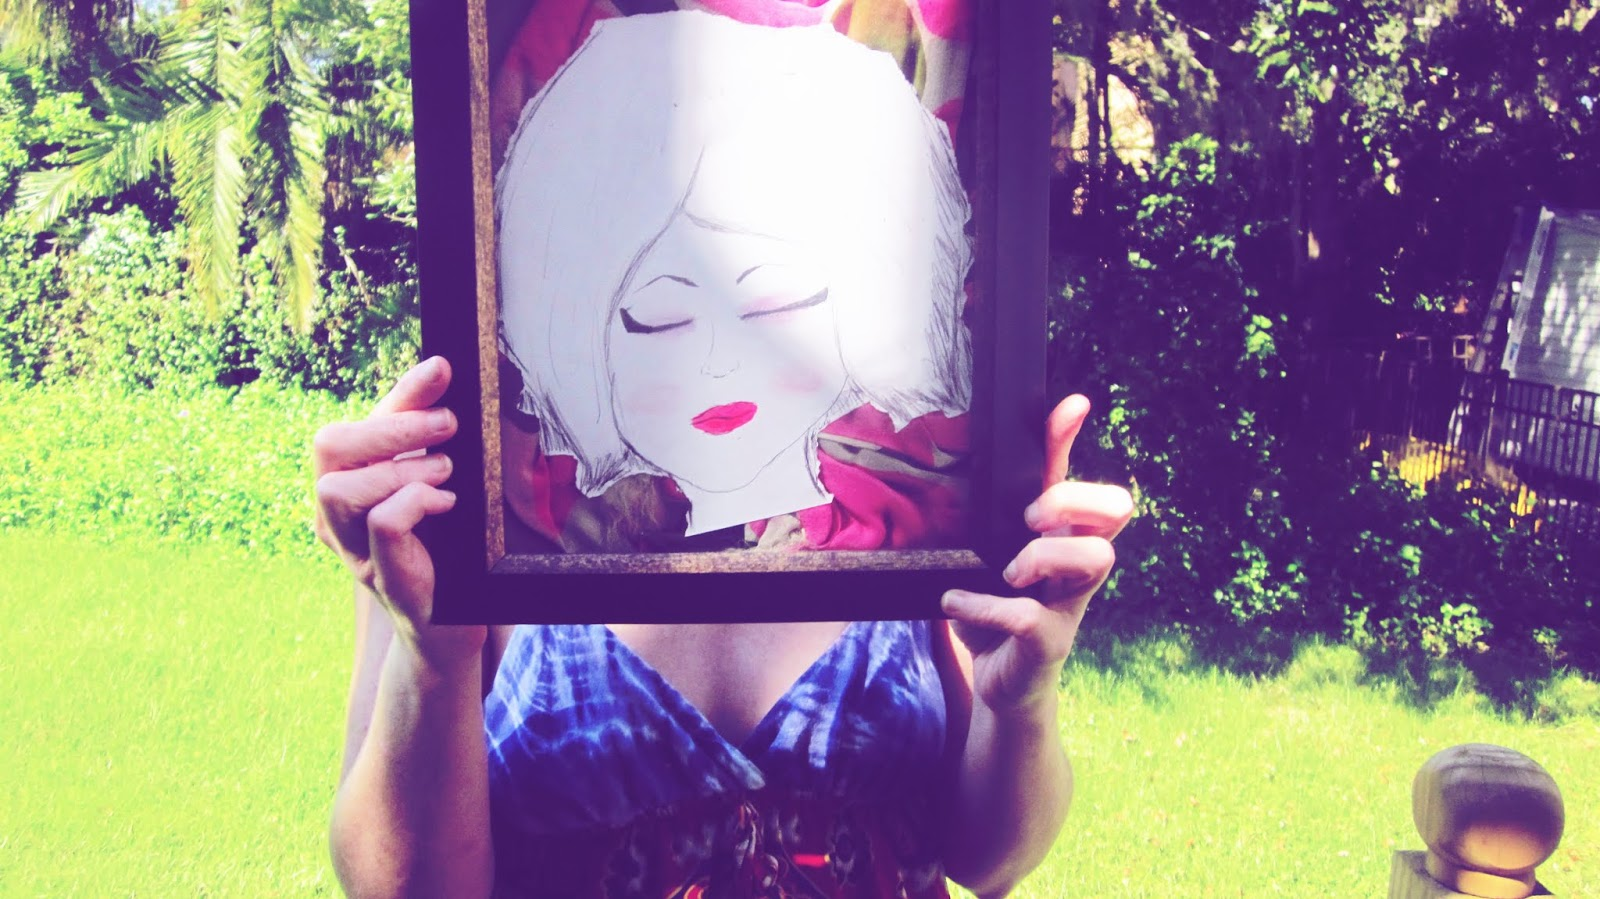 A woman in a Kimono holding a mixed media art self-portrait in her hands as her face